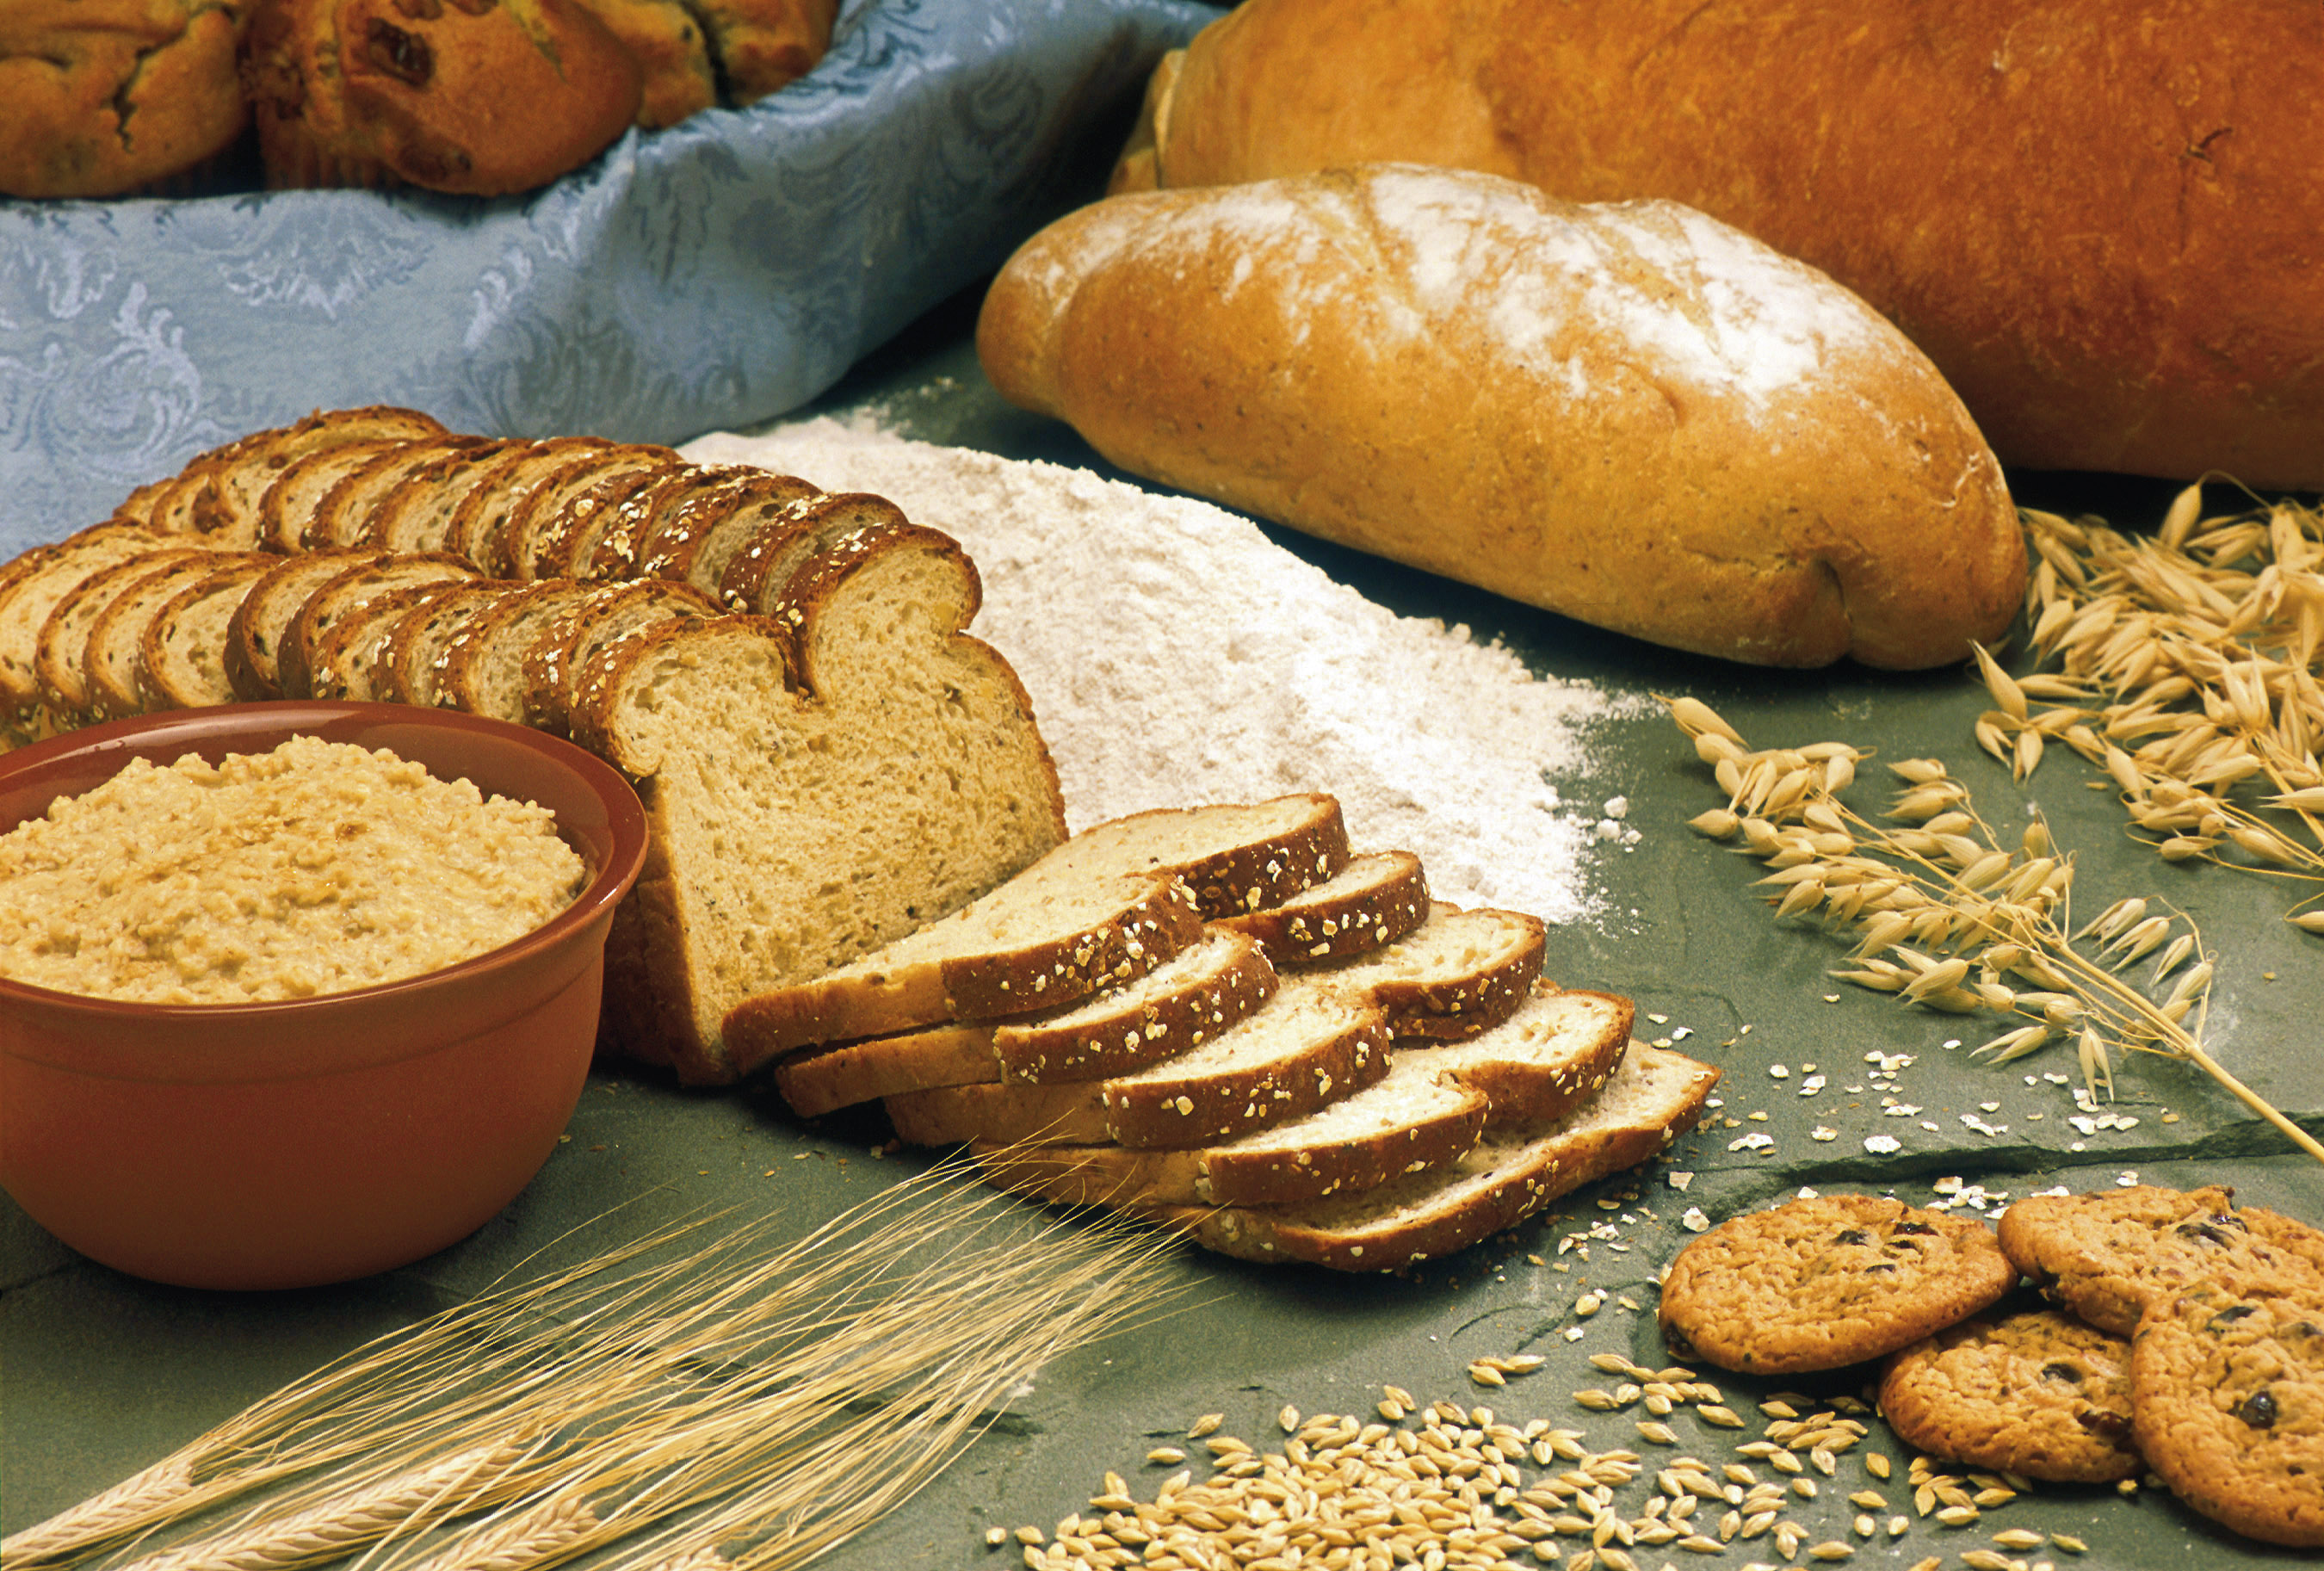 Avoid carbohydrates in order to reduce carbon dioxide waste.